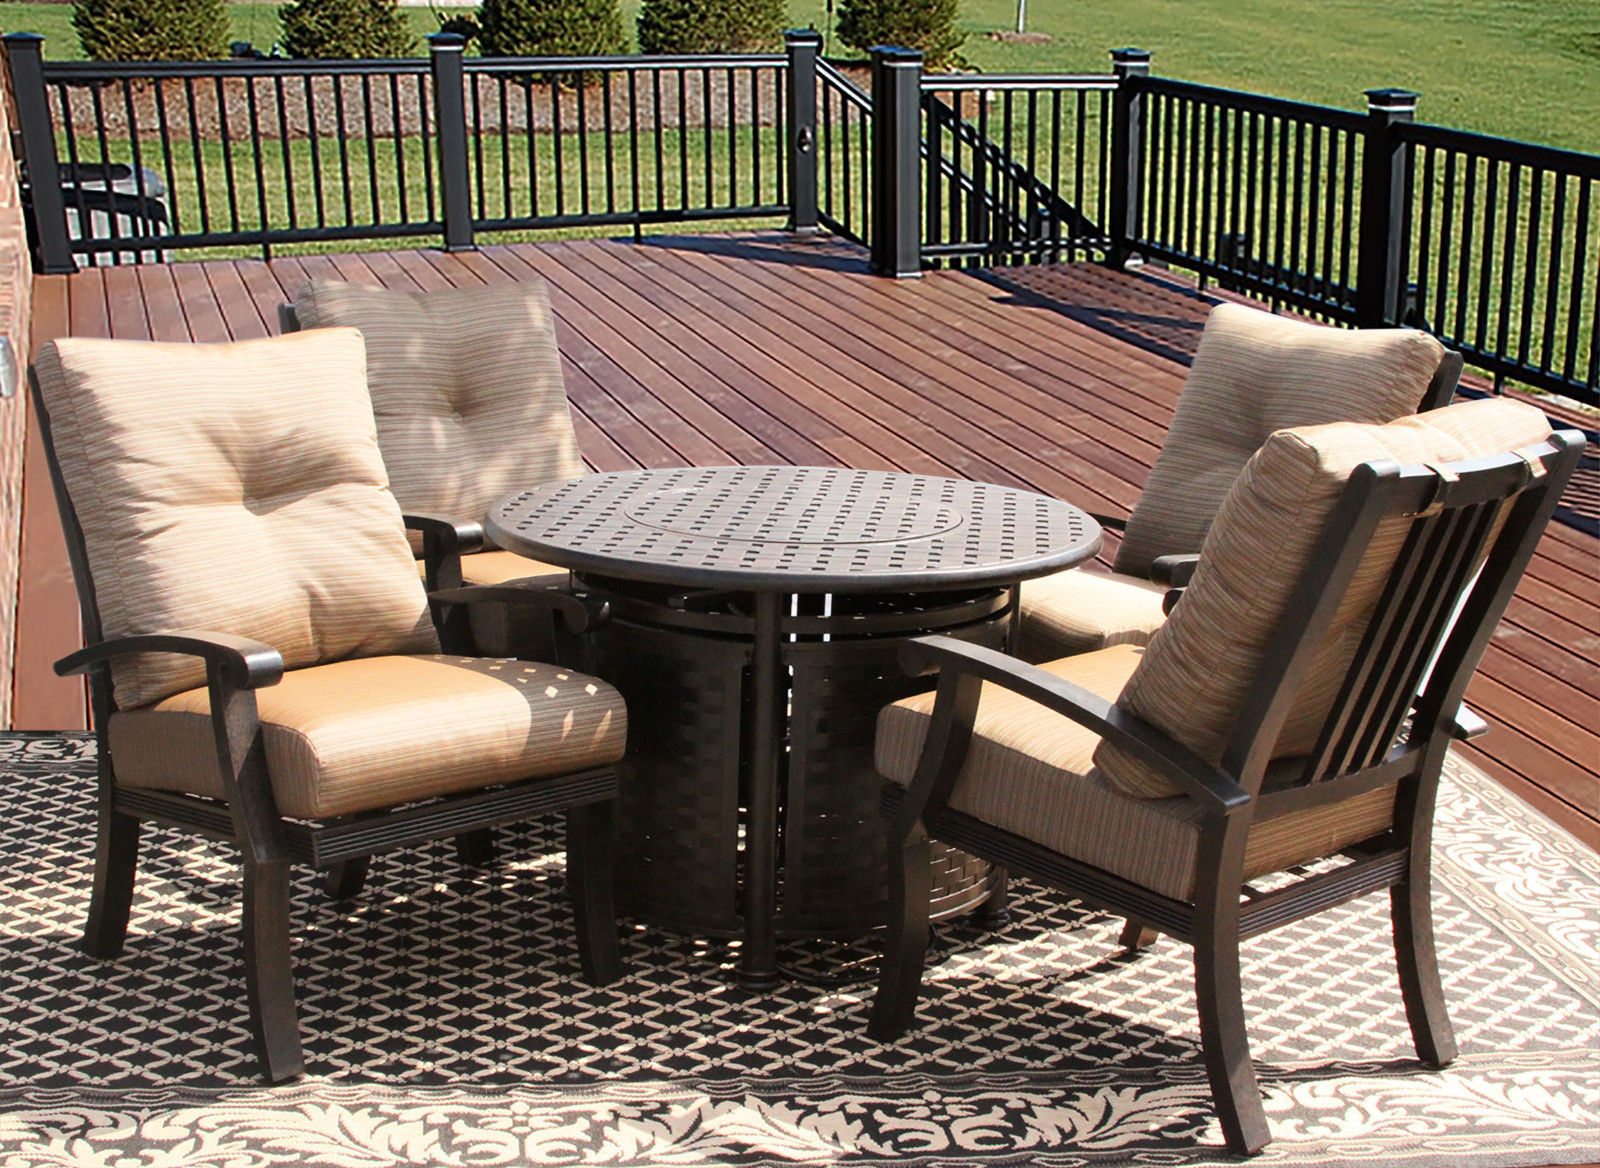 5PC BARBADOS CUSHION OUTDOOR PATIO DINING SET FOR 4 PERSON WITH ROUND FIRE TABLE